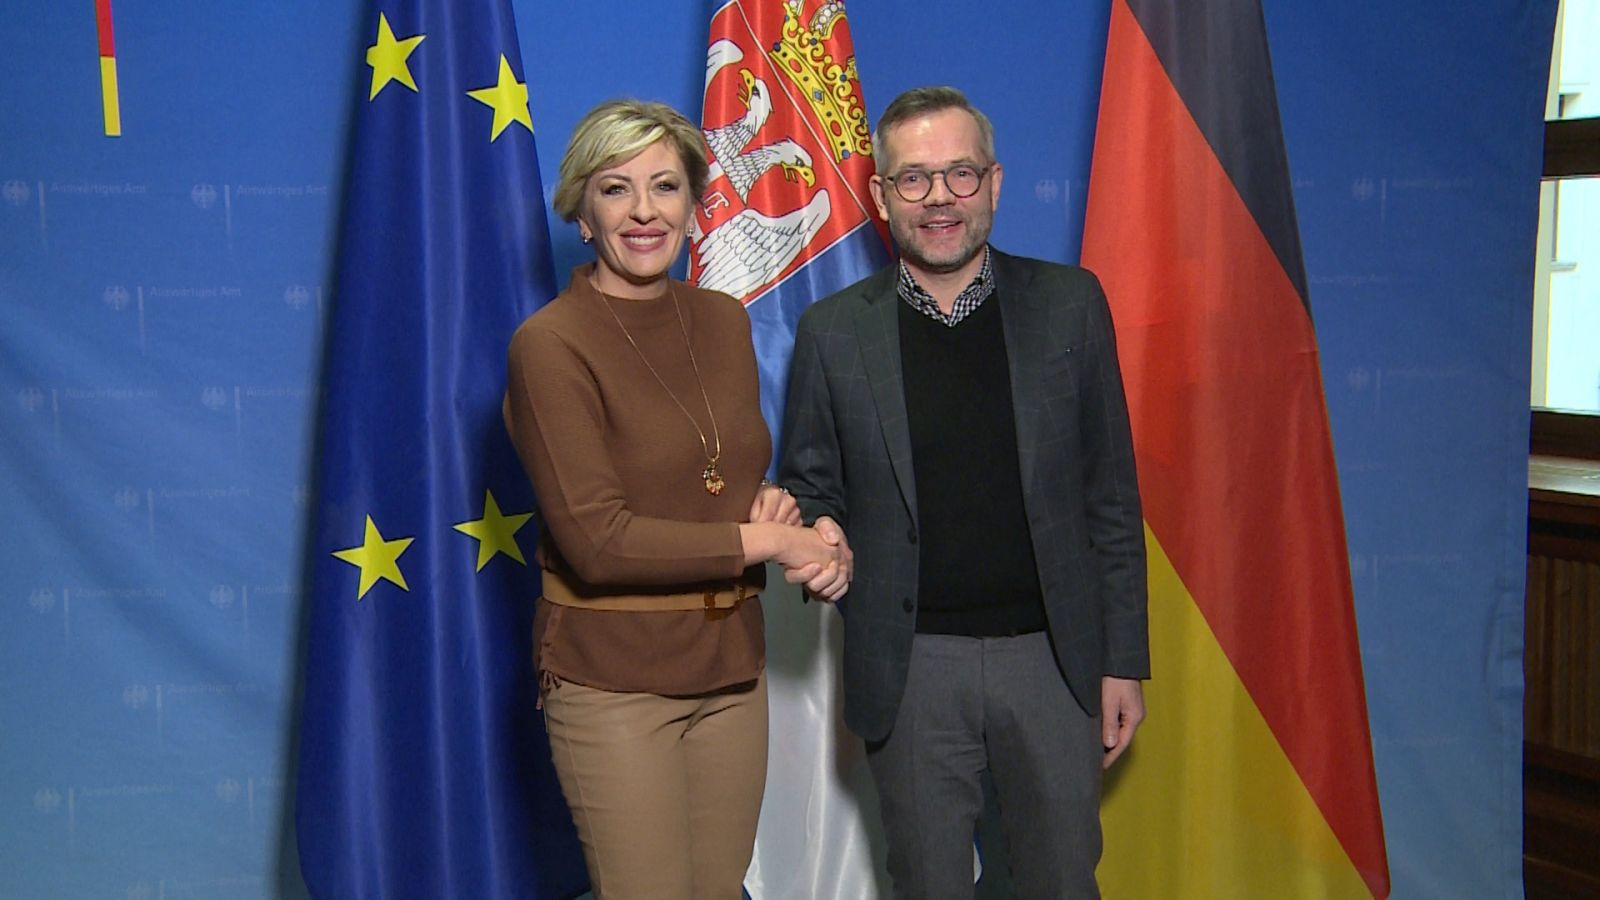 J. Joksimović: The EU counts on Serbia the most and expects the most from us